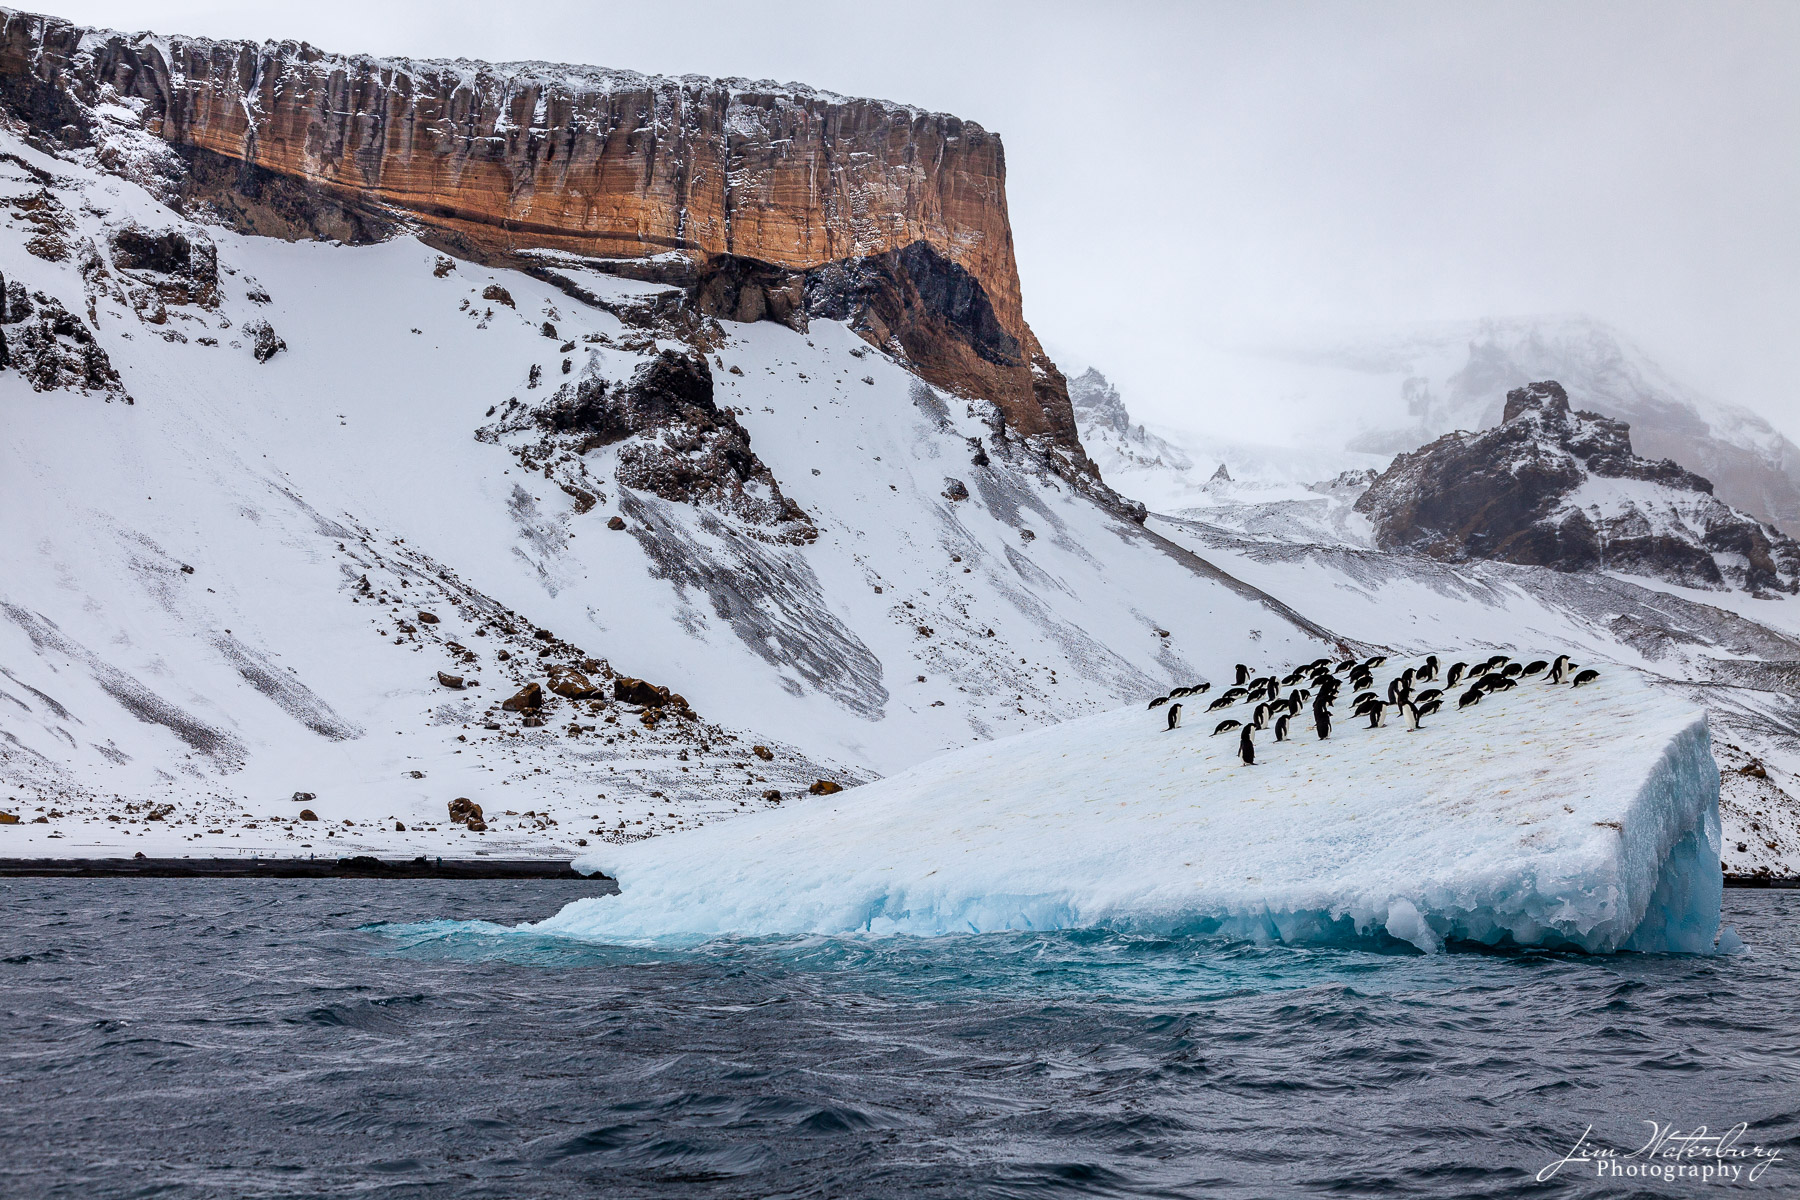 Penguins gather on an iceberg floating off of Brown Bluff, in the Antarctic Peninsula, on a stormy day.